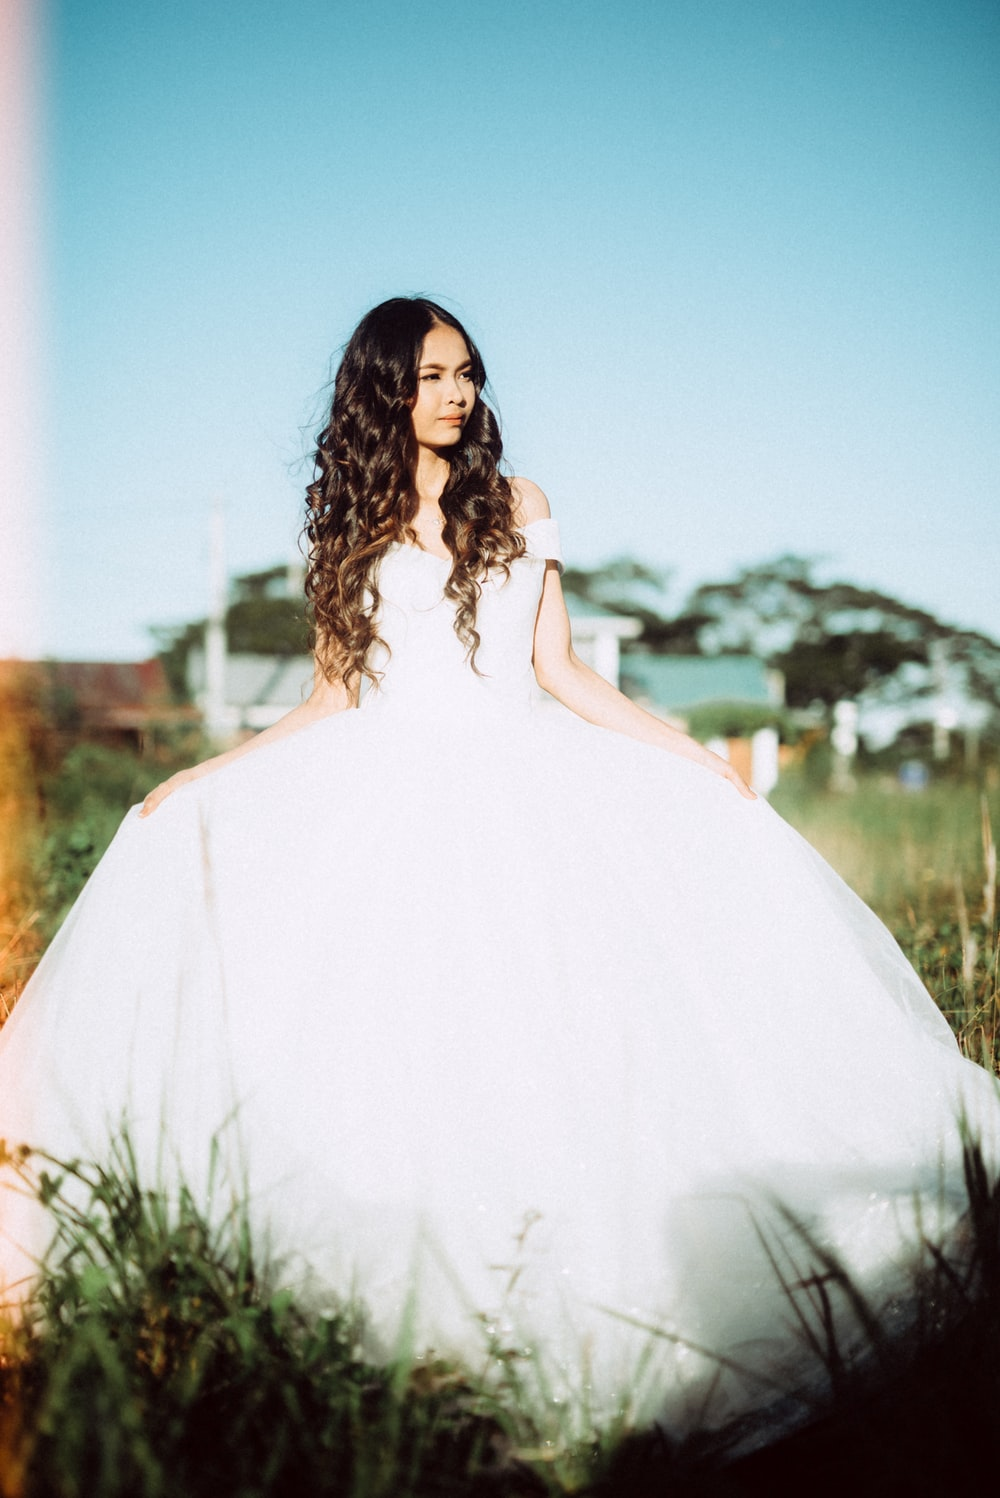 woman in white dress standing on grass field